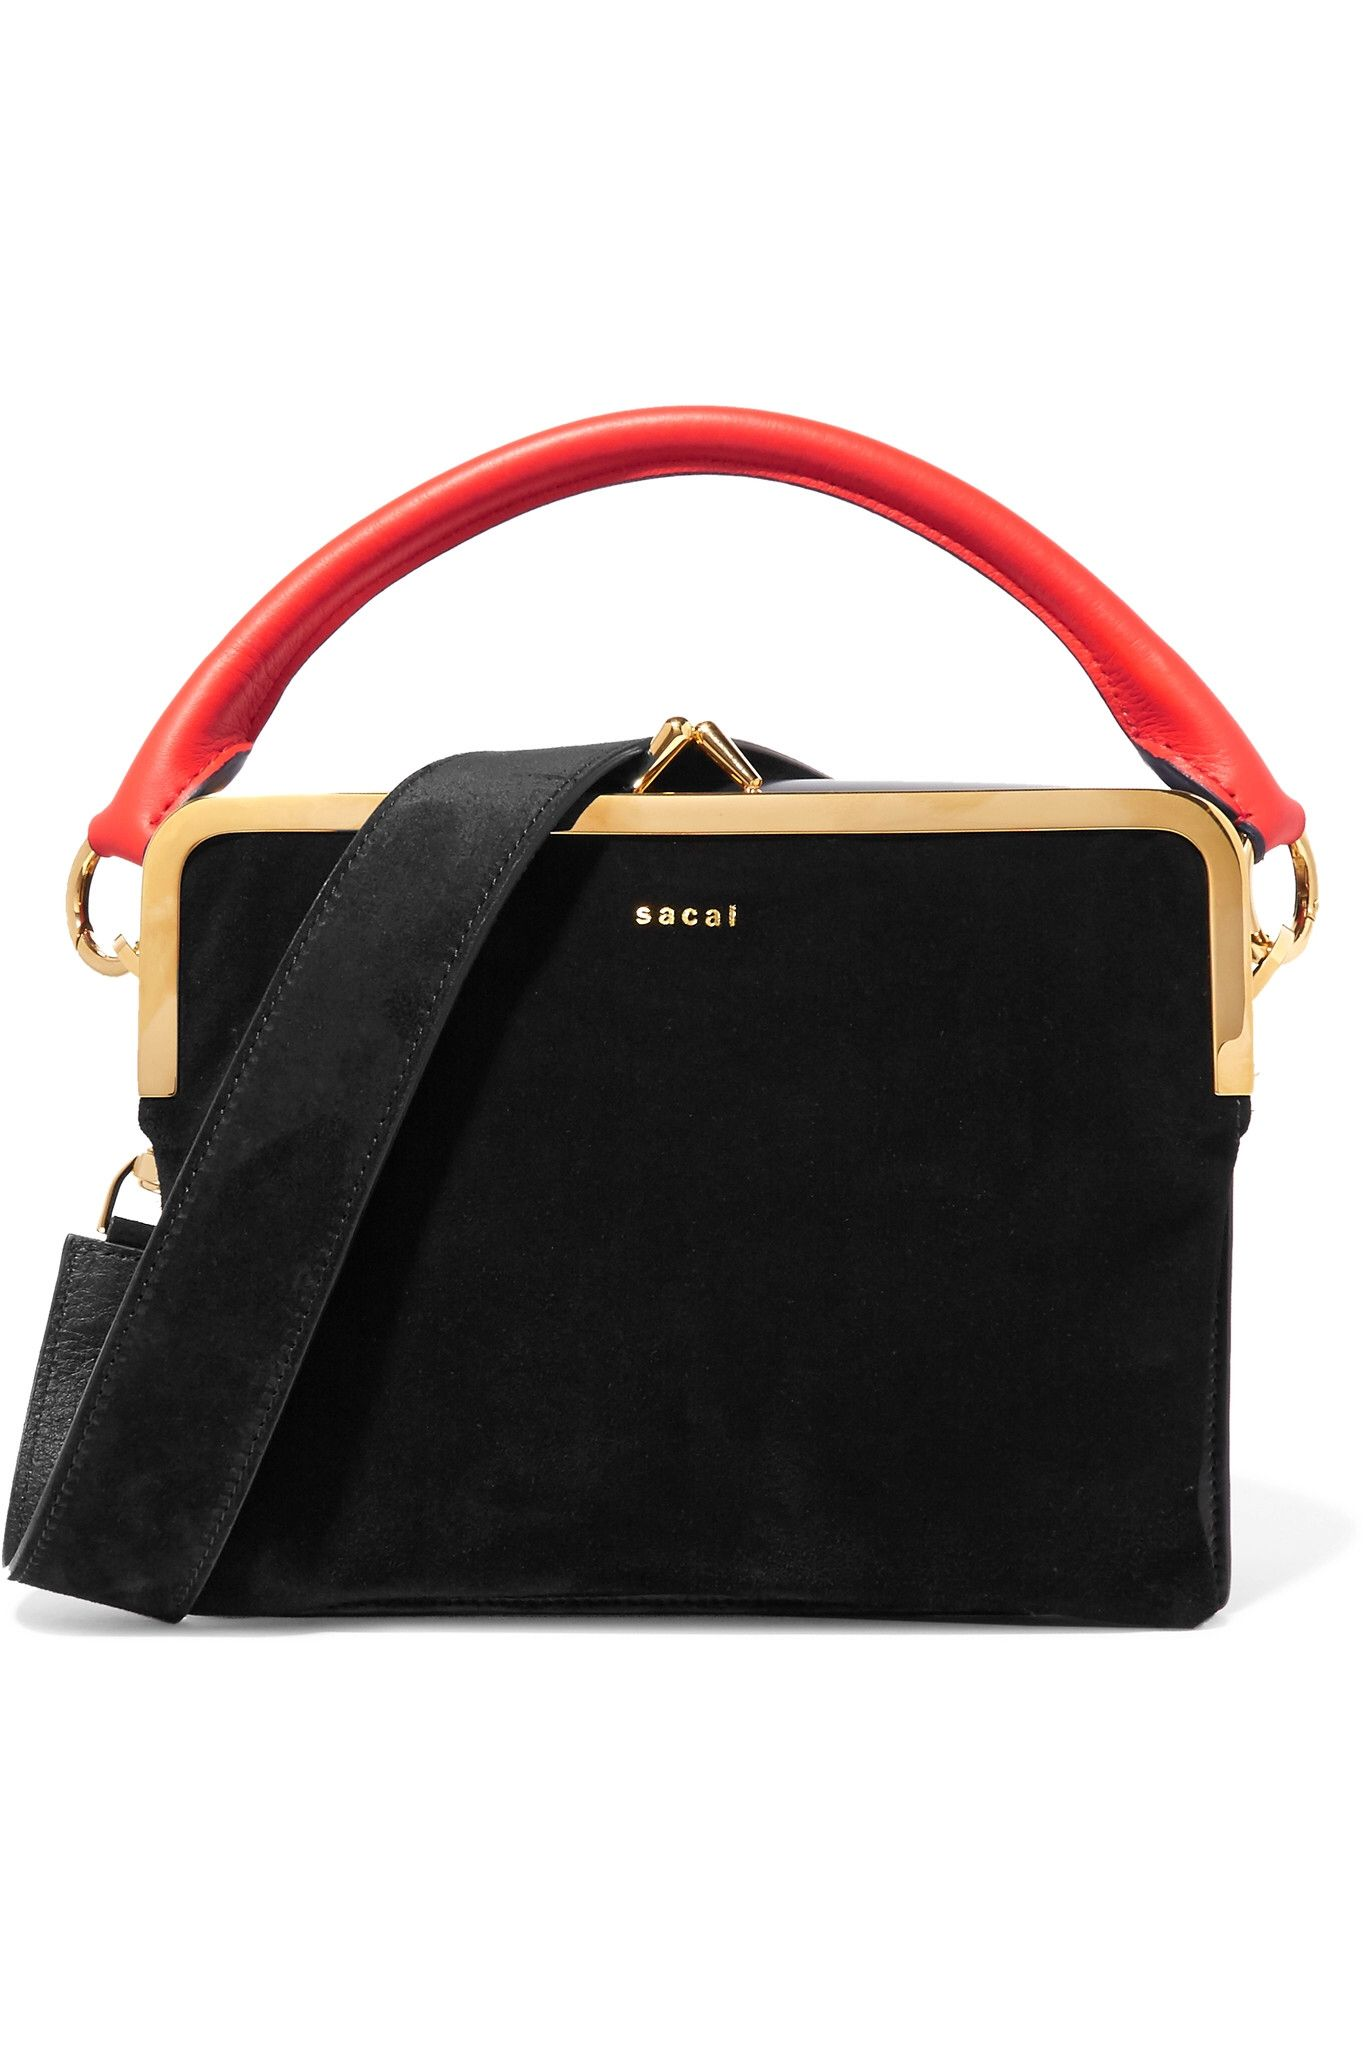 90a11f7a60 Sacai - Leather and suede shoulder bag